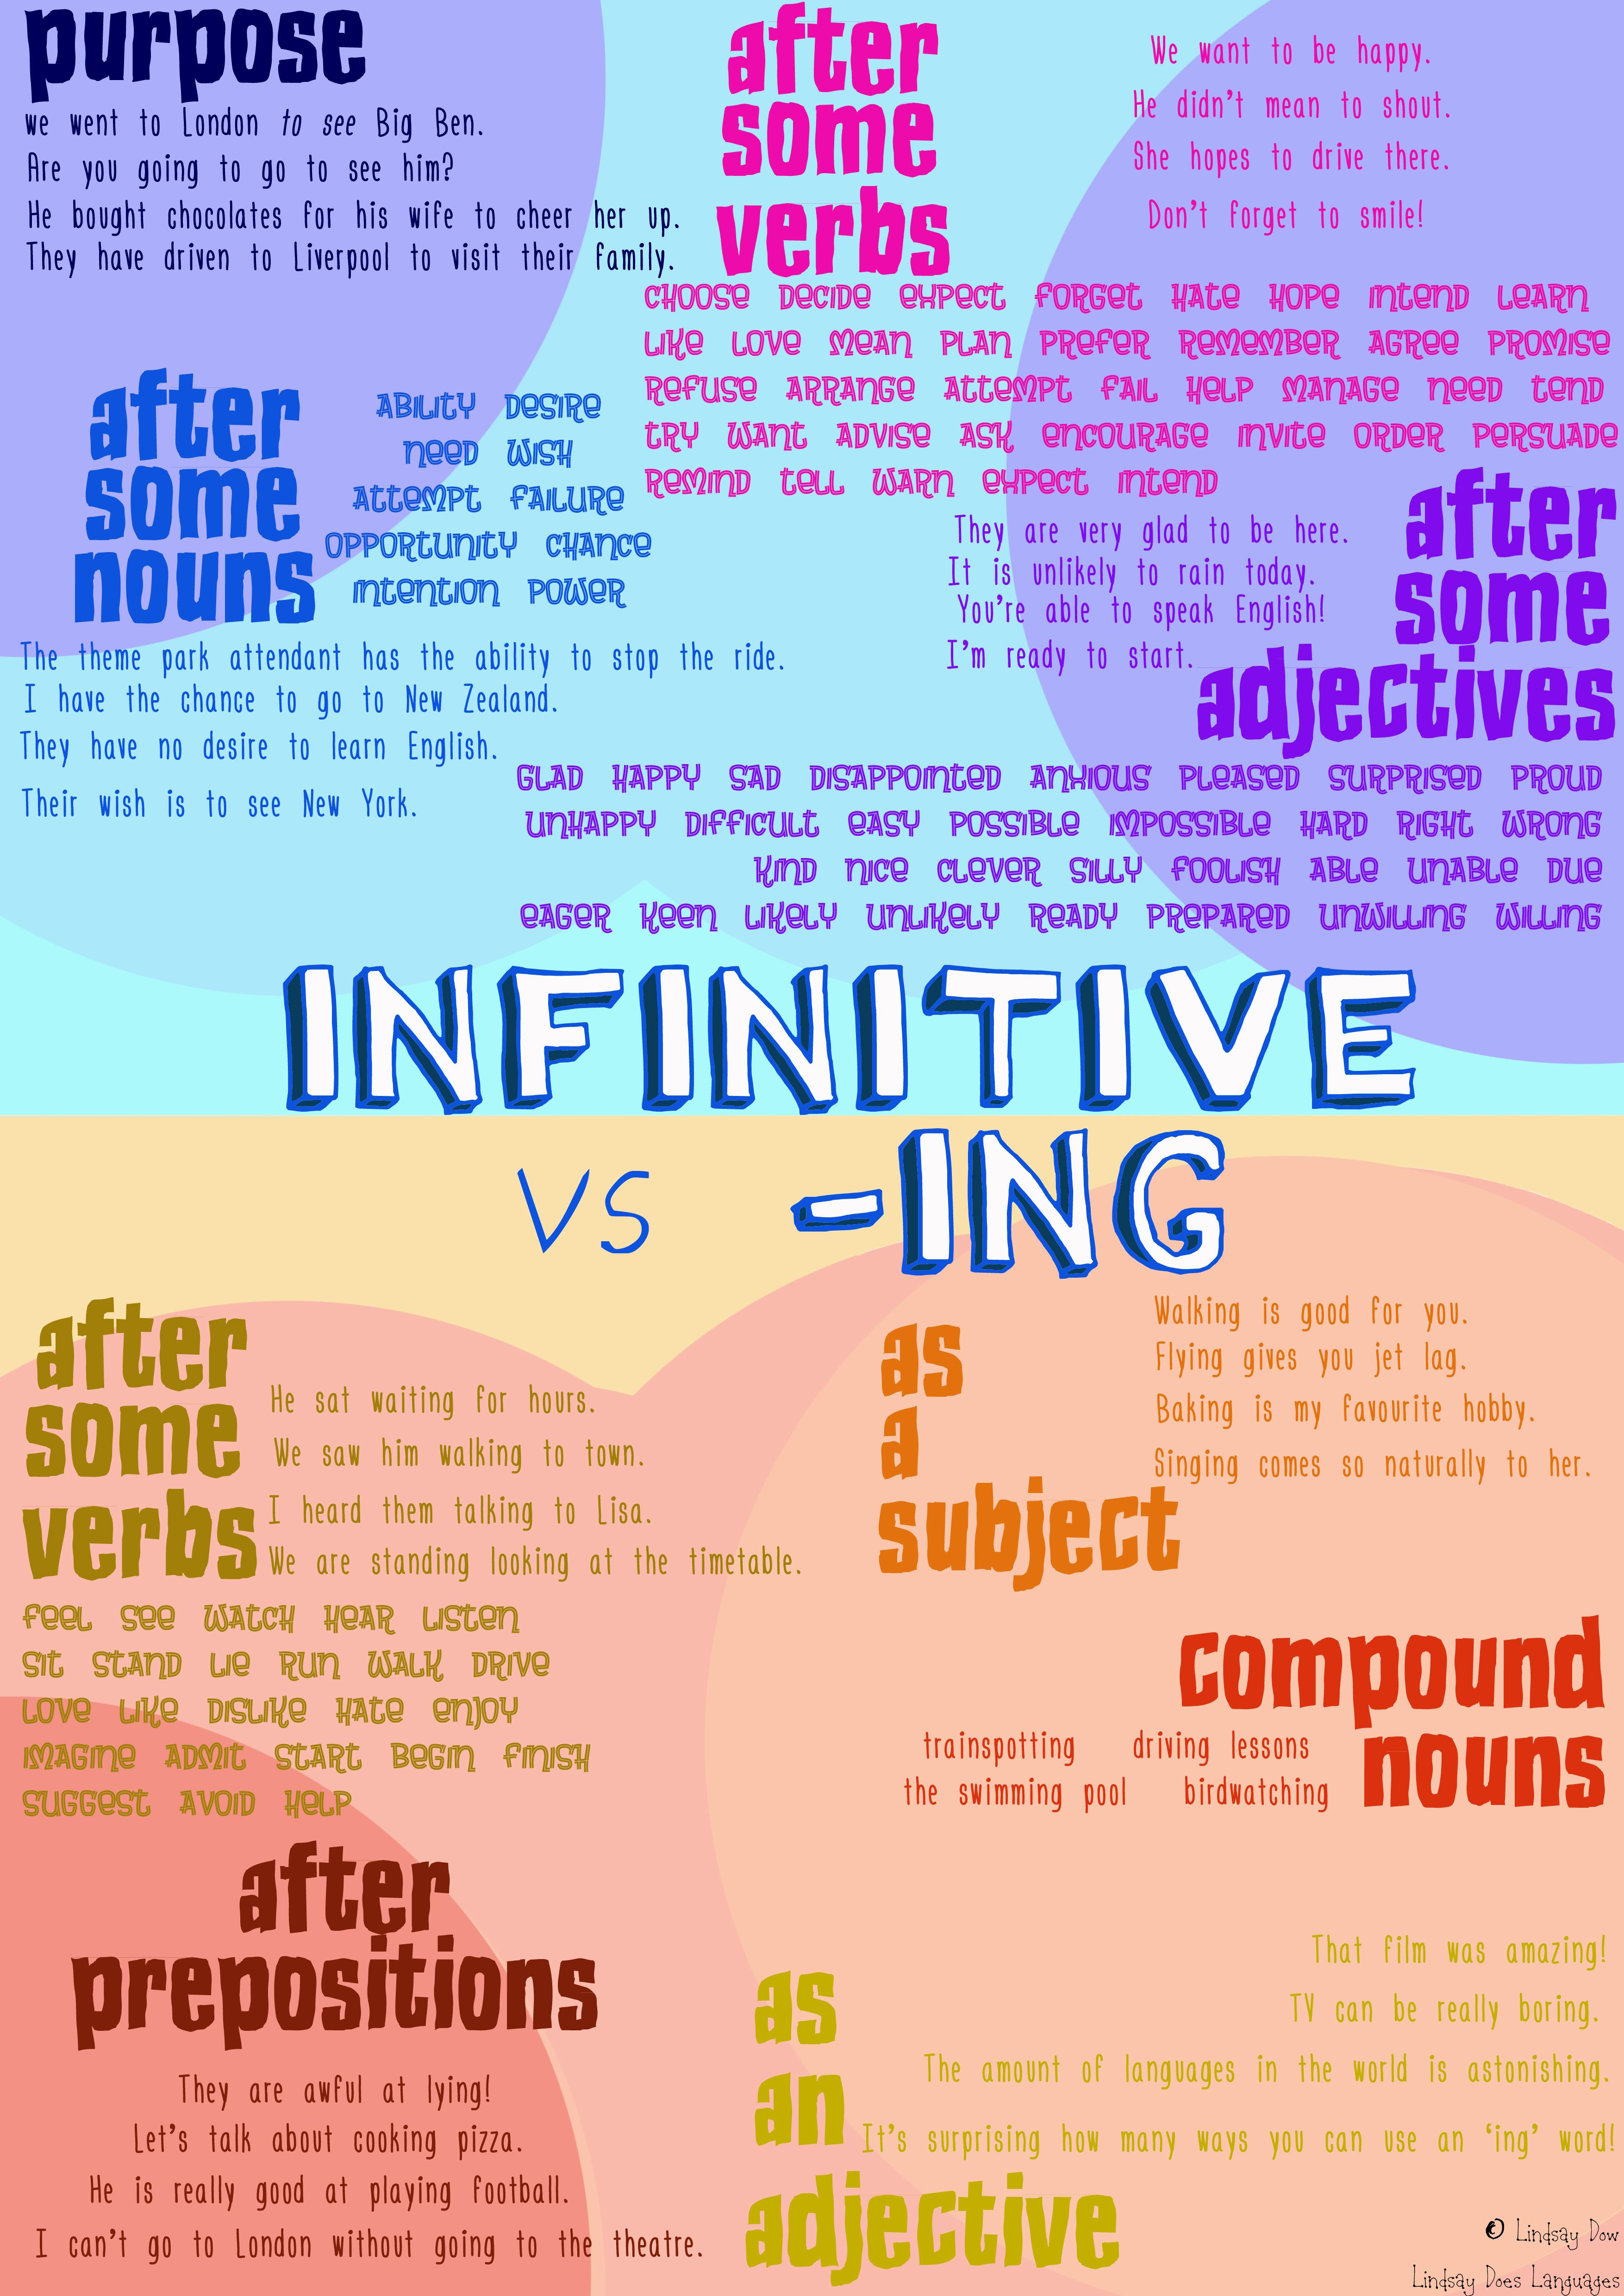 Learning English Infinitive Vs Ing